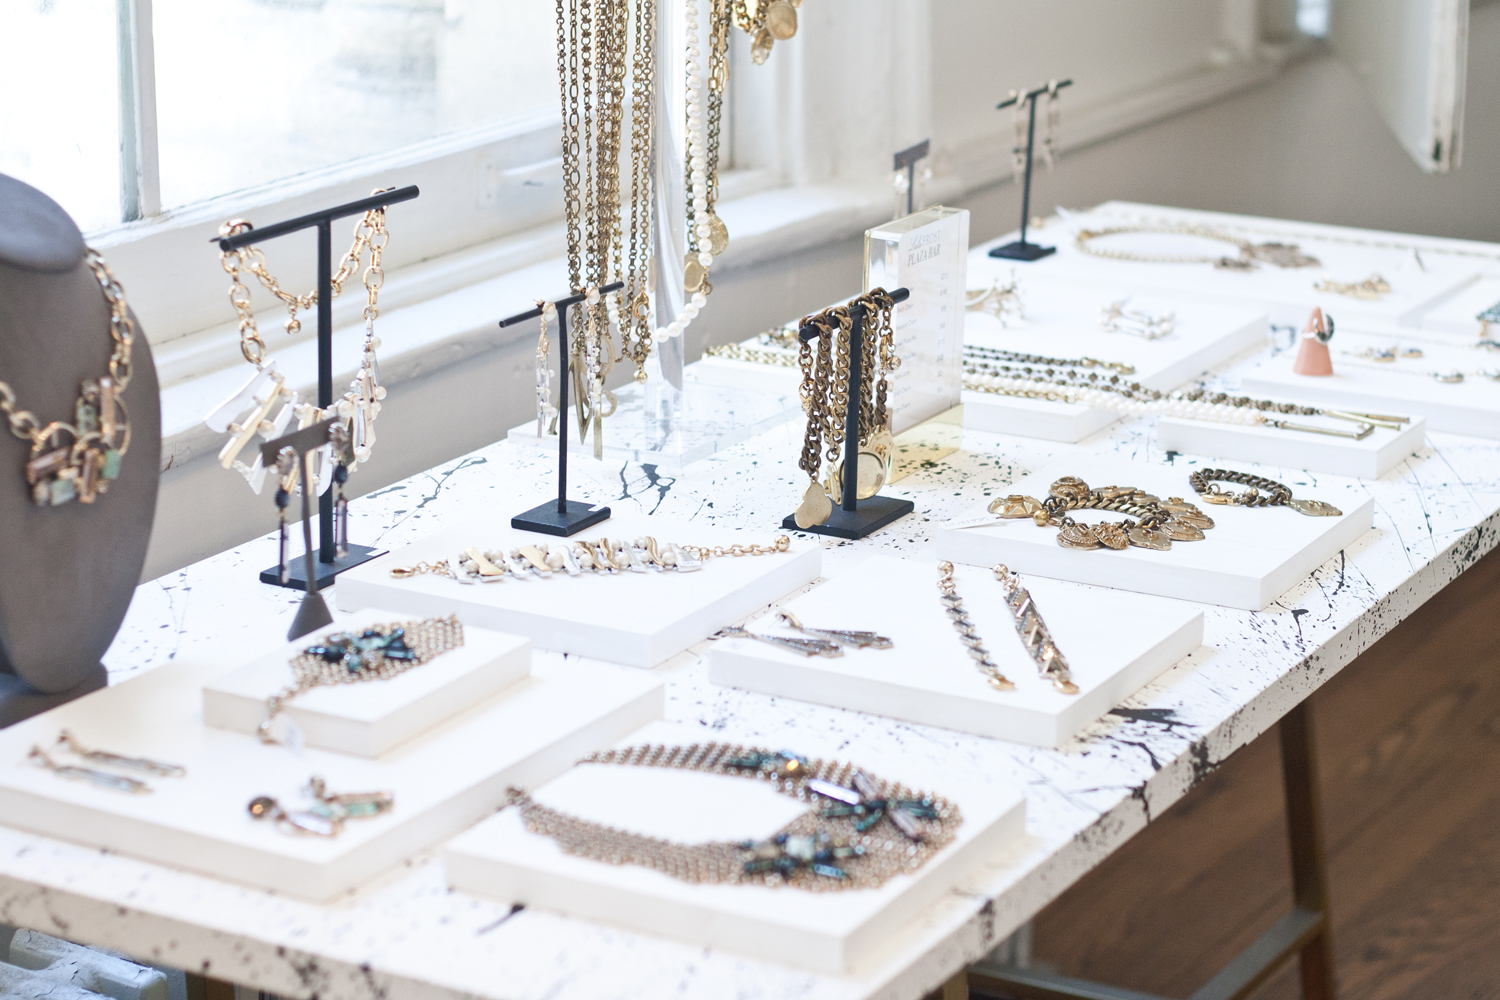 08lulufrost-studio-showroom-jewelry-nyc-newyork-travel